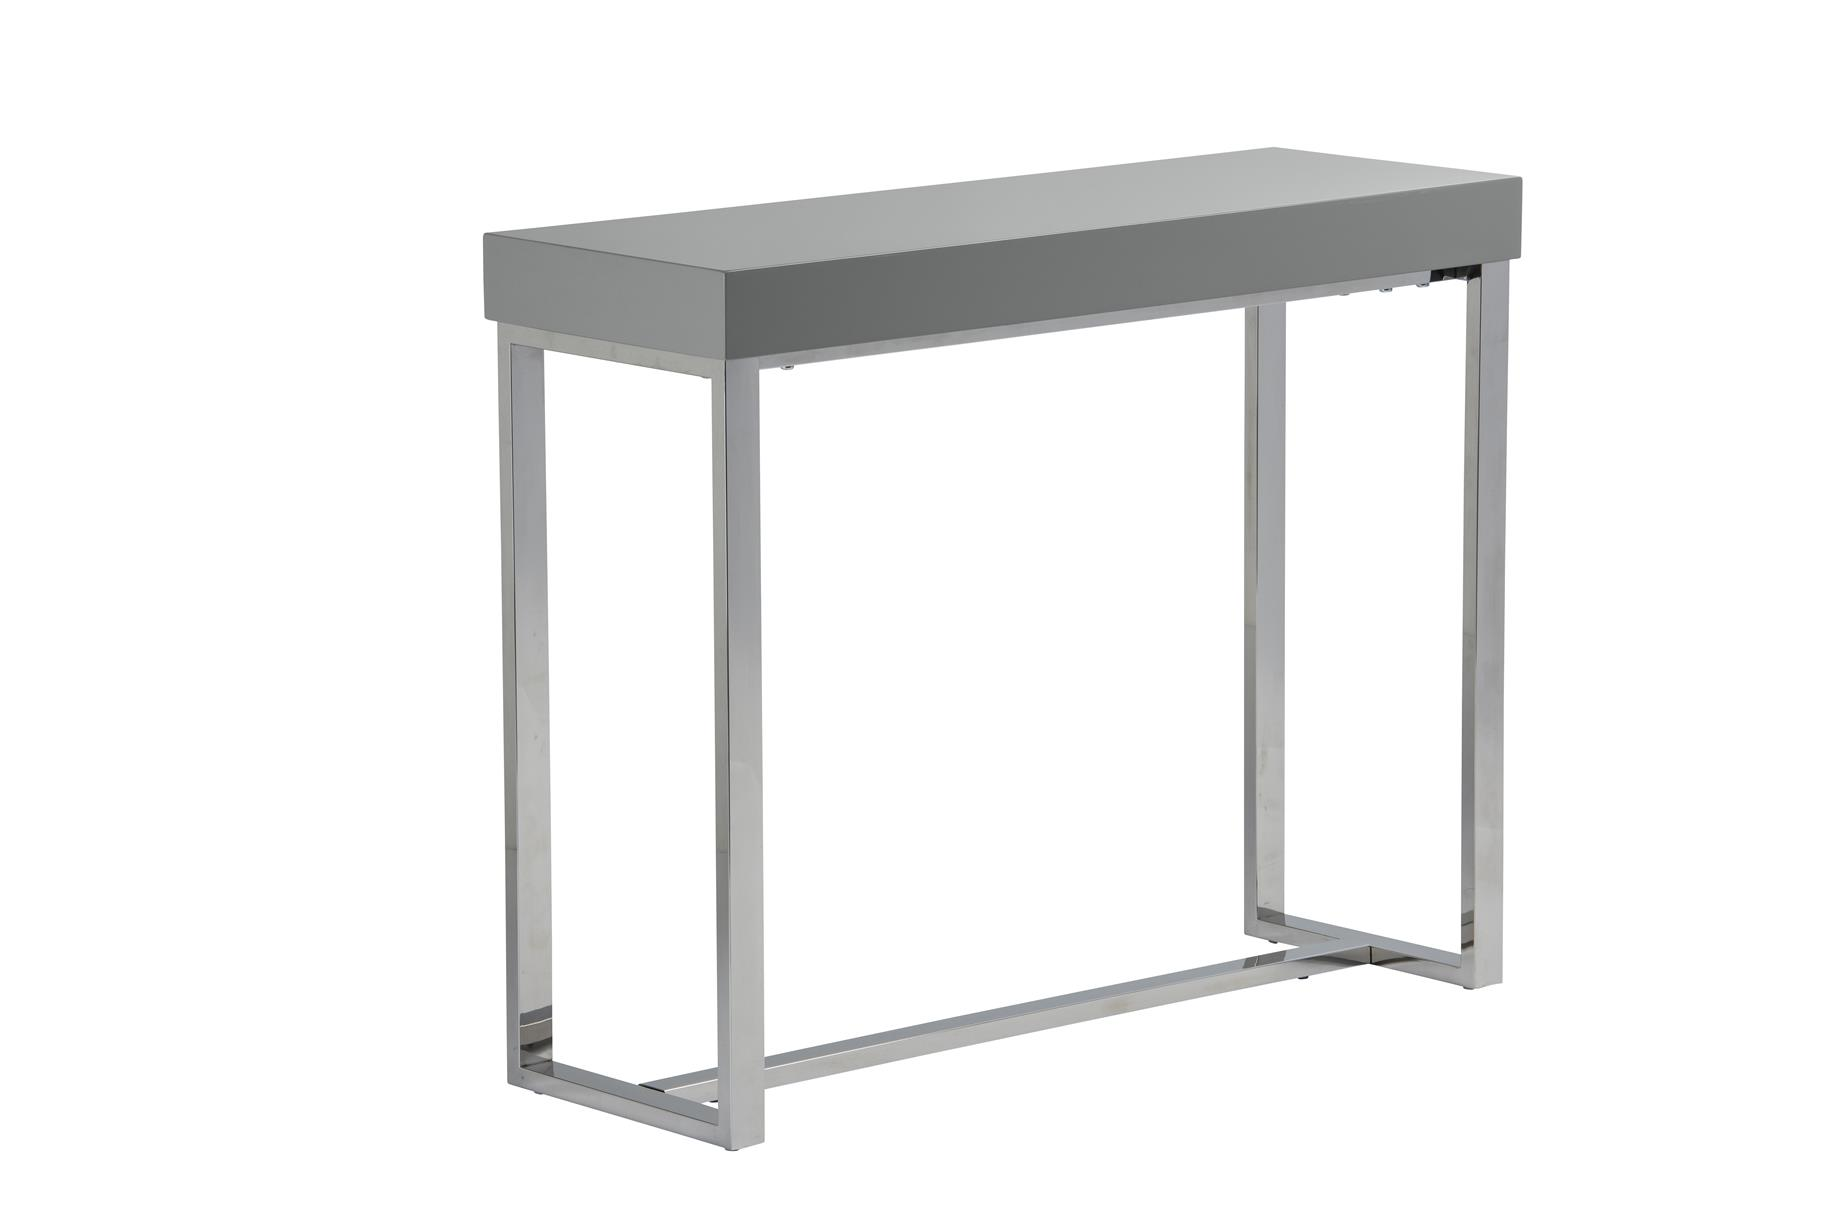 Awe Inspiring Franklyn Console Table In Grey High Gloss Gmtry Best Dining Table And Chair Ideas Images Gmtryco